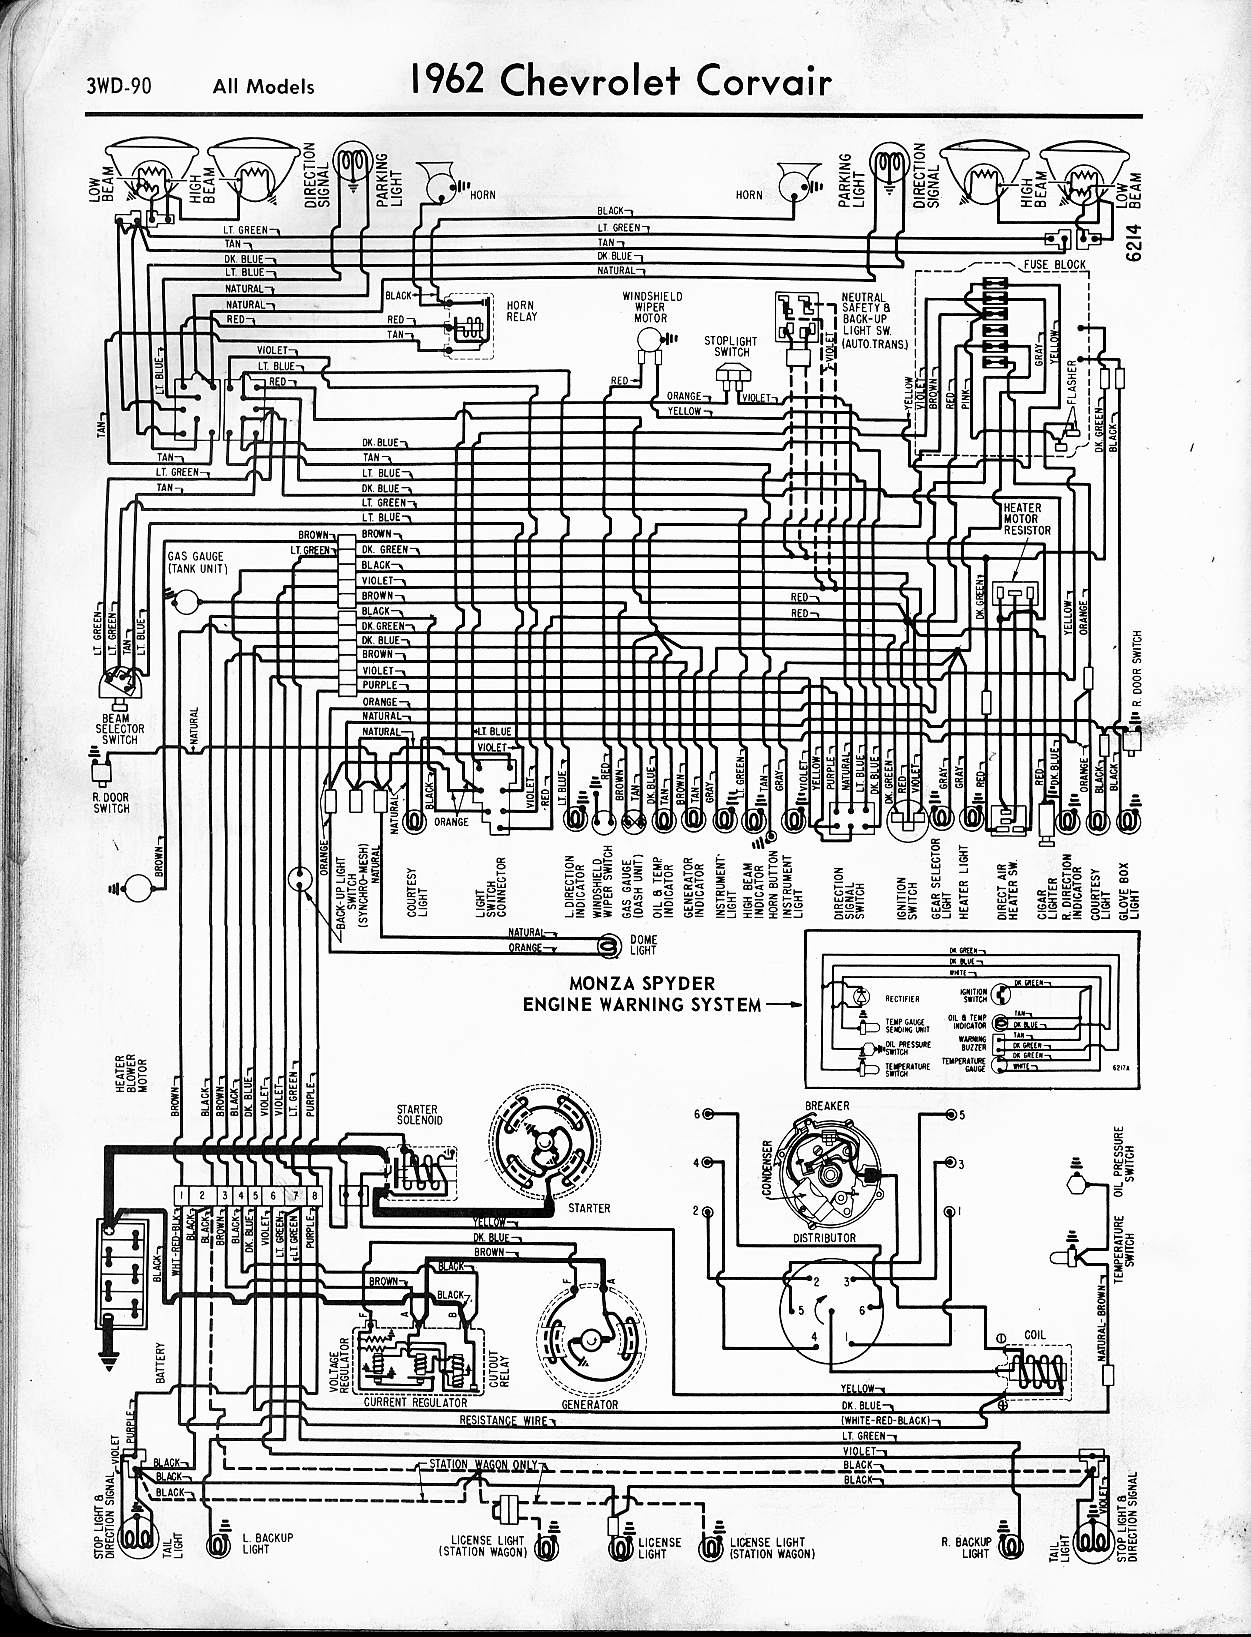 1964 Corvette Wiring Diagram Library 2000 Lincoln Town Car Starter 1962 Corvair